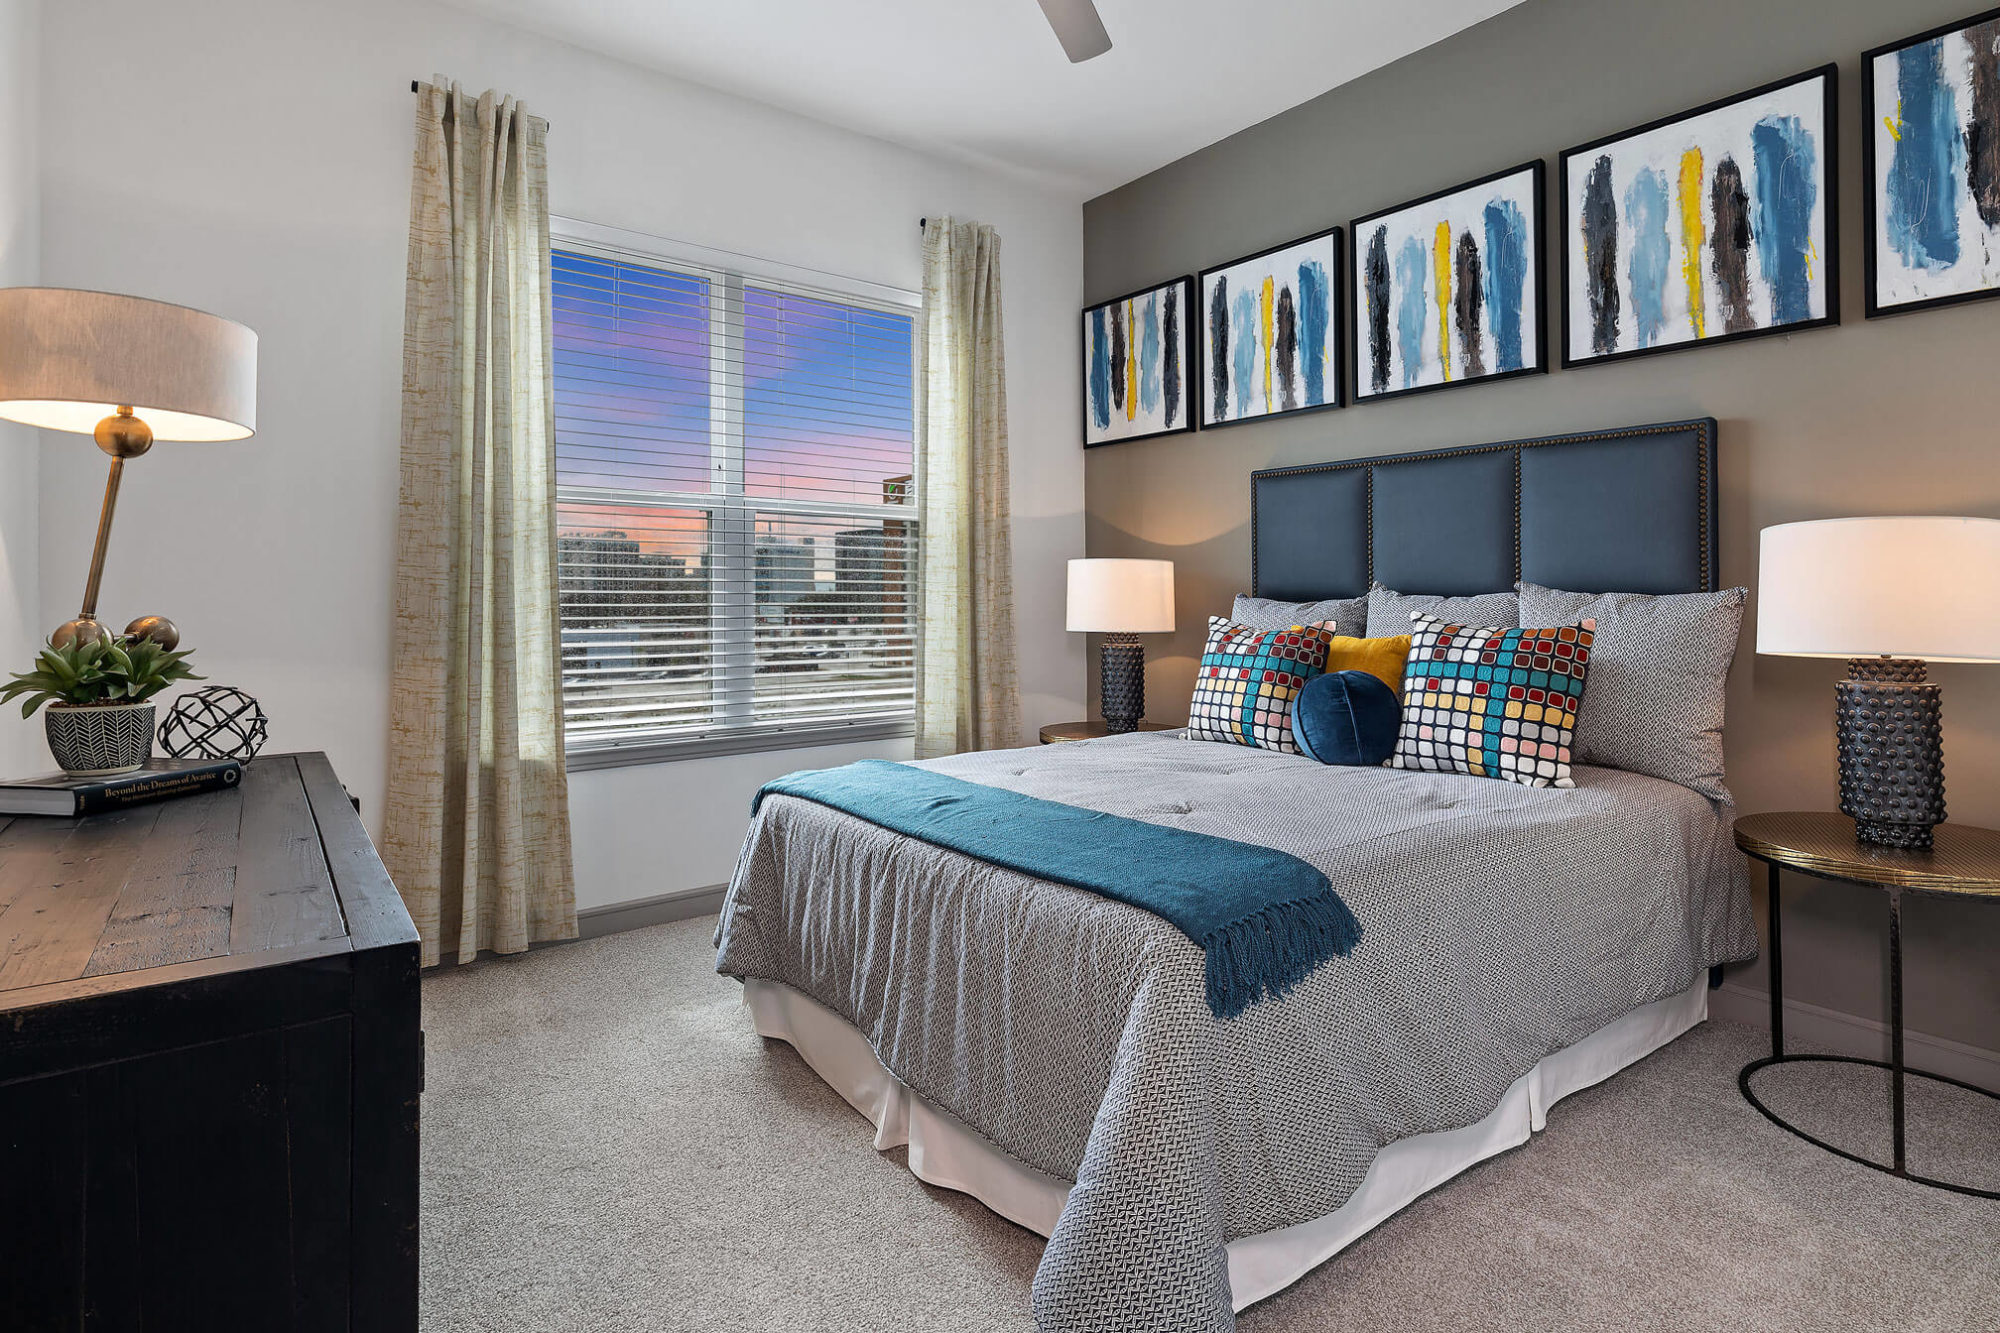 Bedroom with gray accent wall, large window with view, plush carpeting, modern furniture and ceiling fan